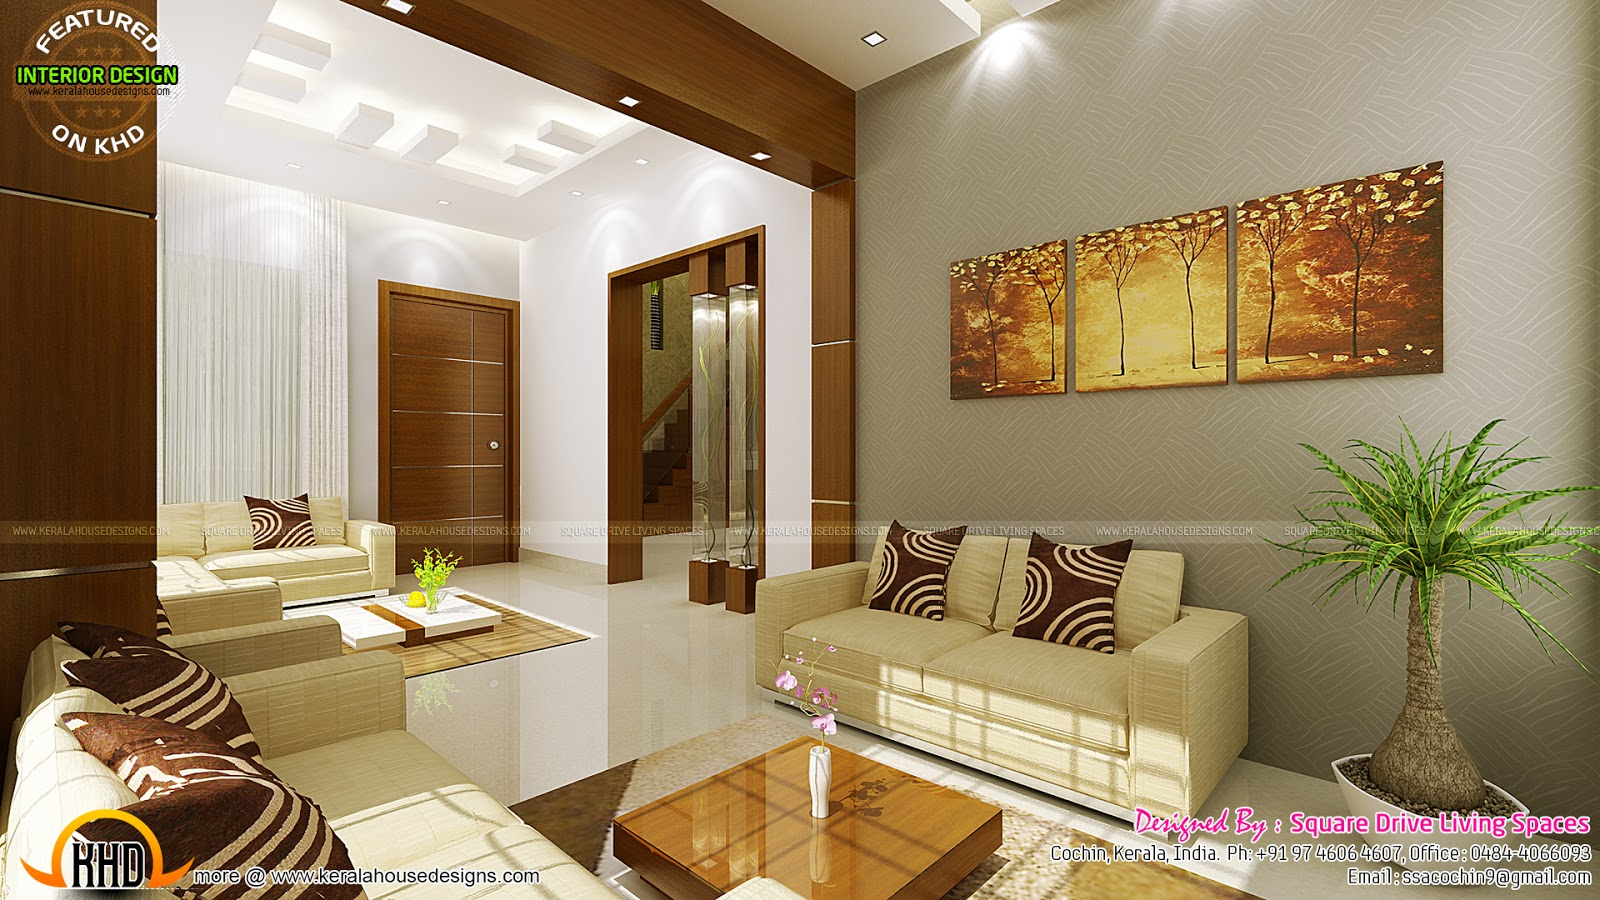 Contemporary kitchen dining and living room kerala home for Interior house design pictures